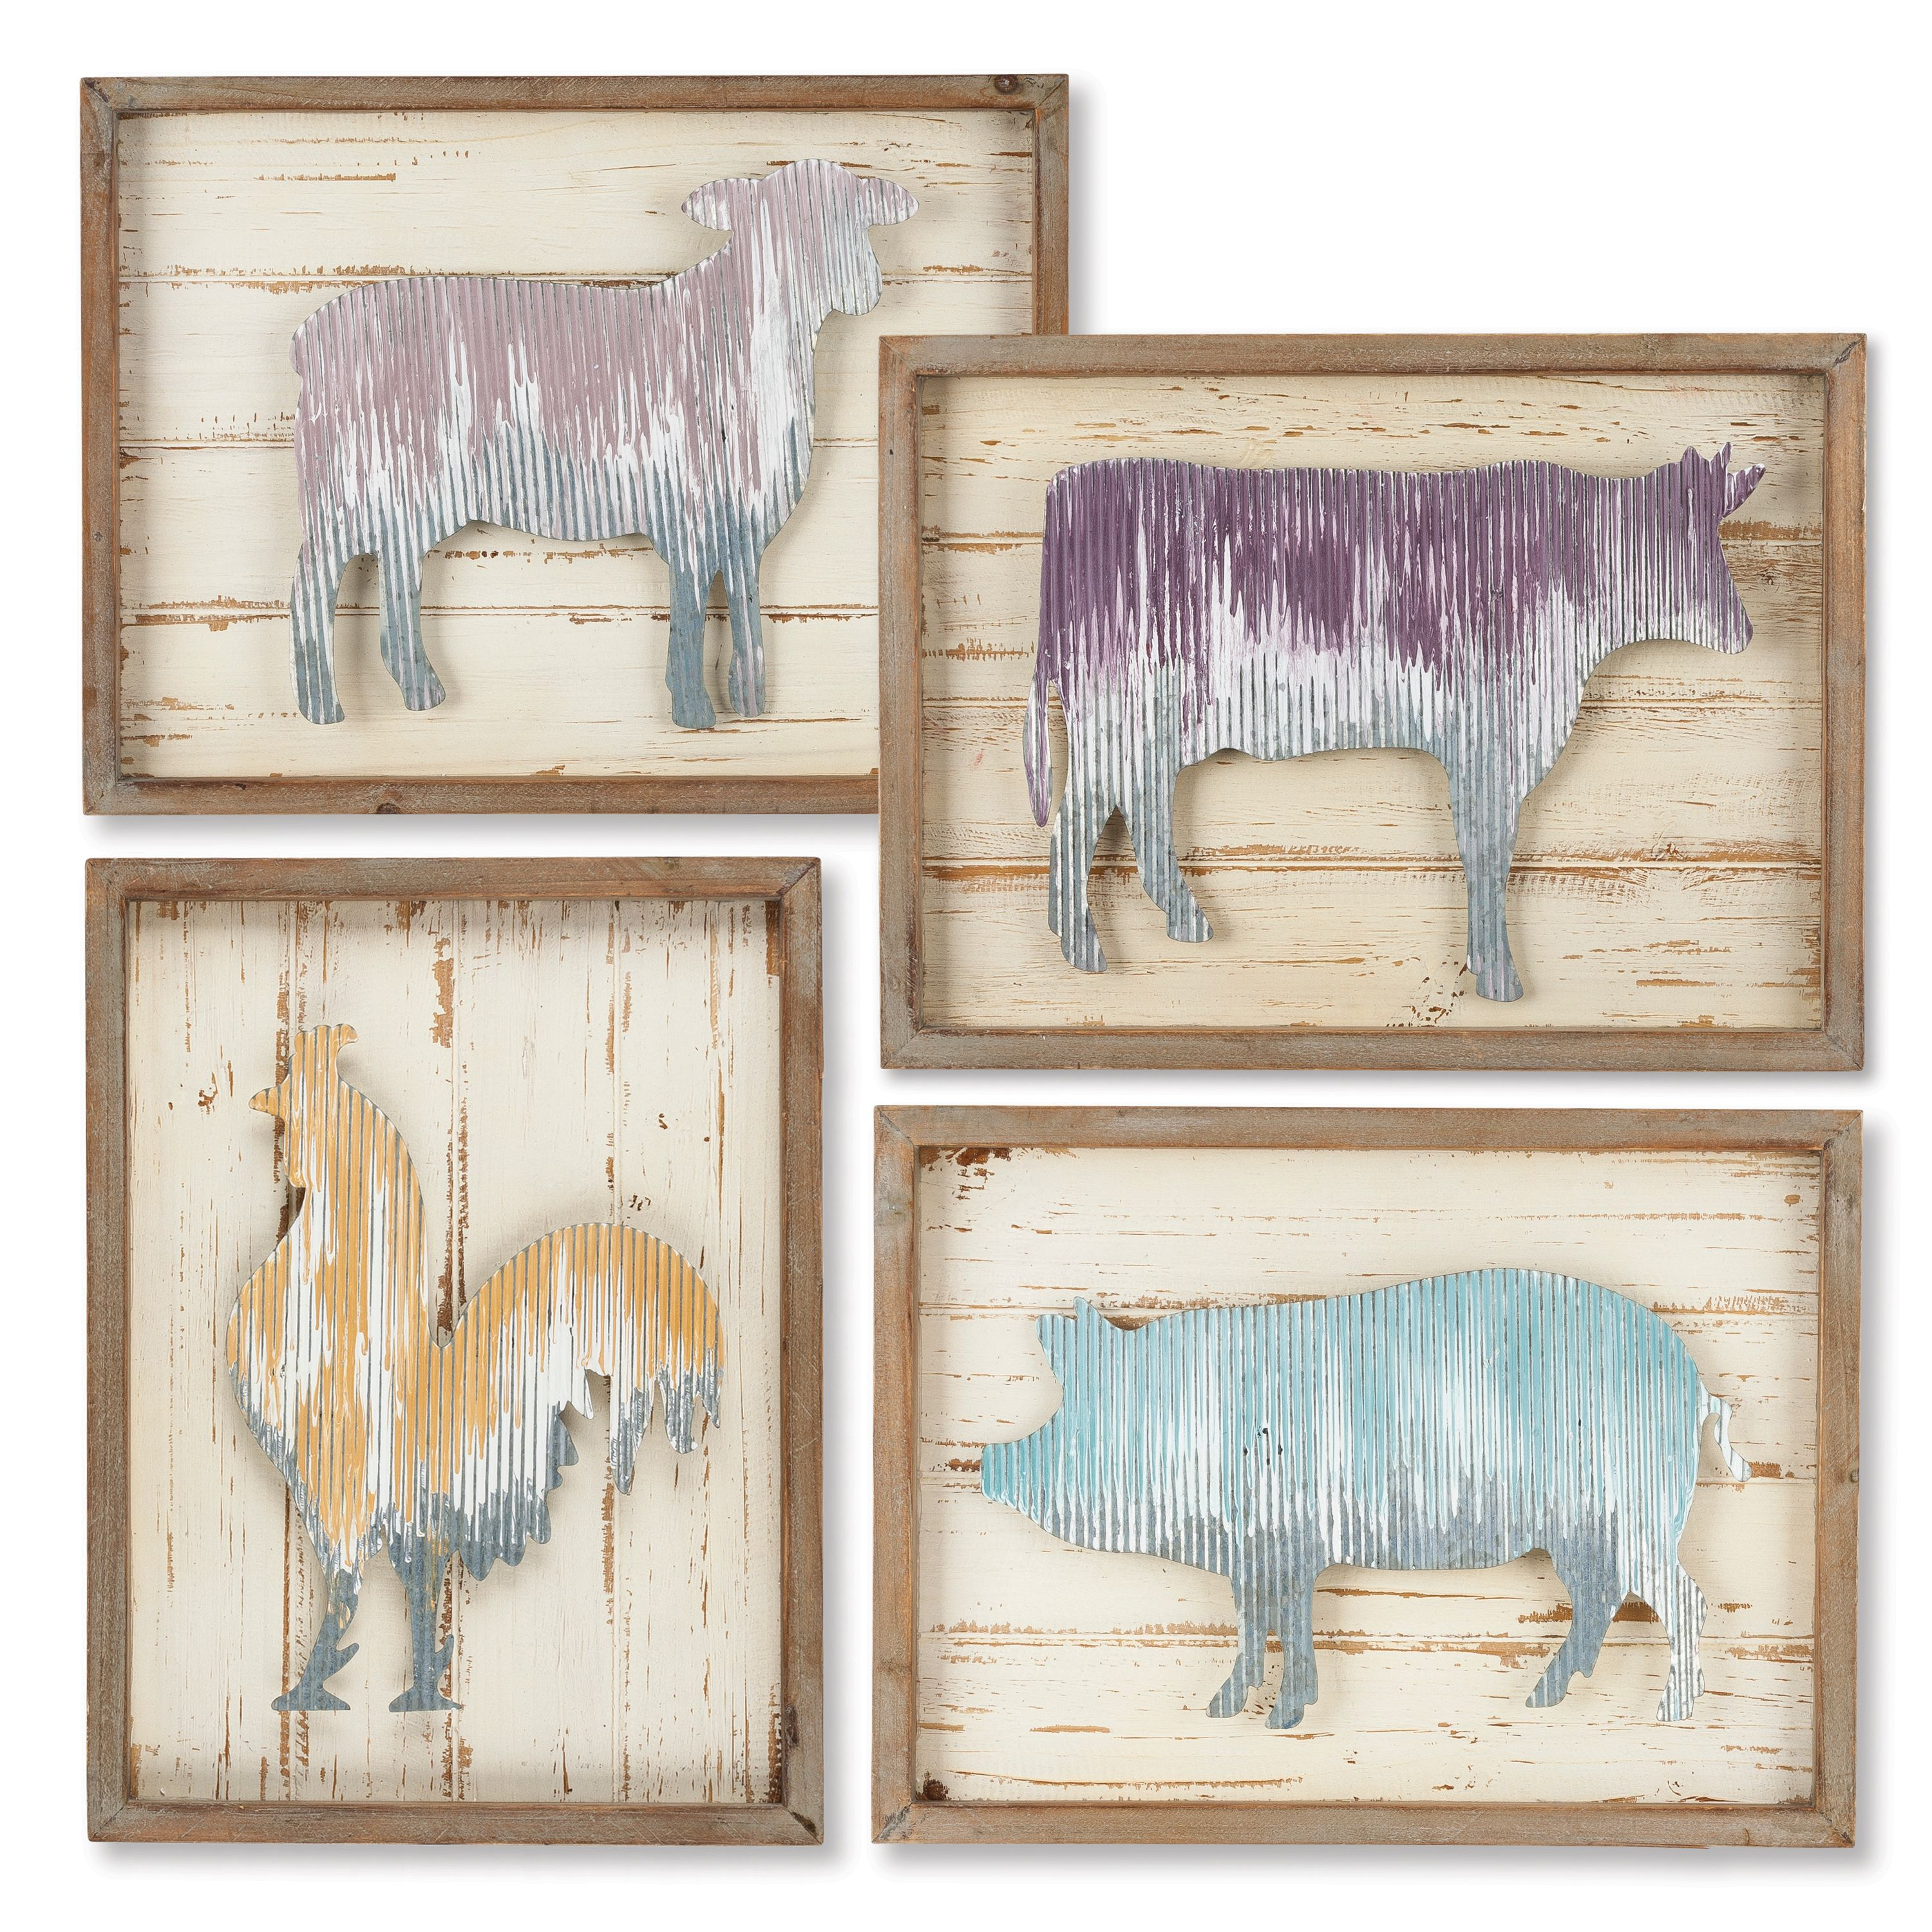 15.75-Inch Corrugated Farm Animal Wall Art Signs Framed in Wood in Pale Spice Market Colors (Set of 4)